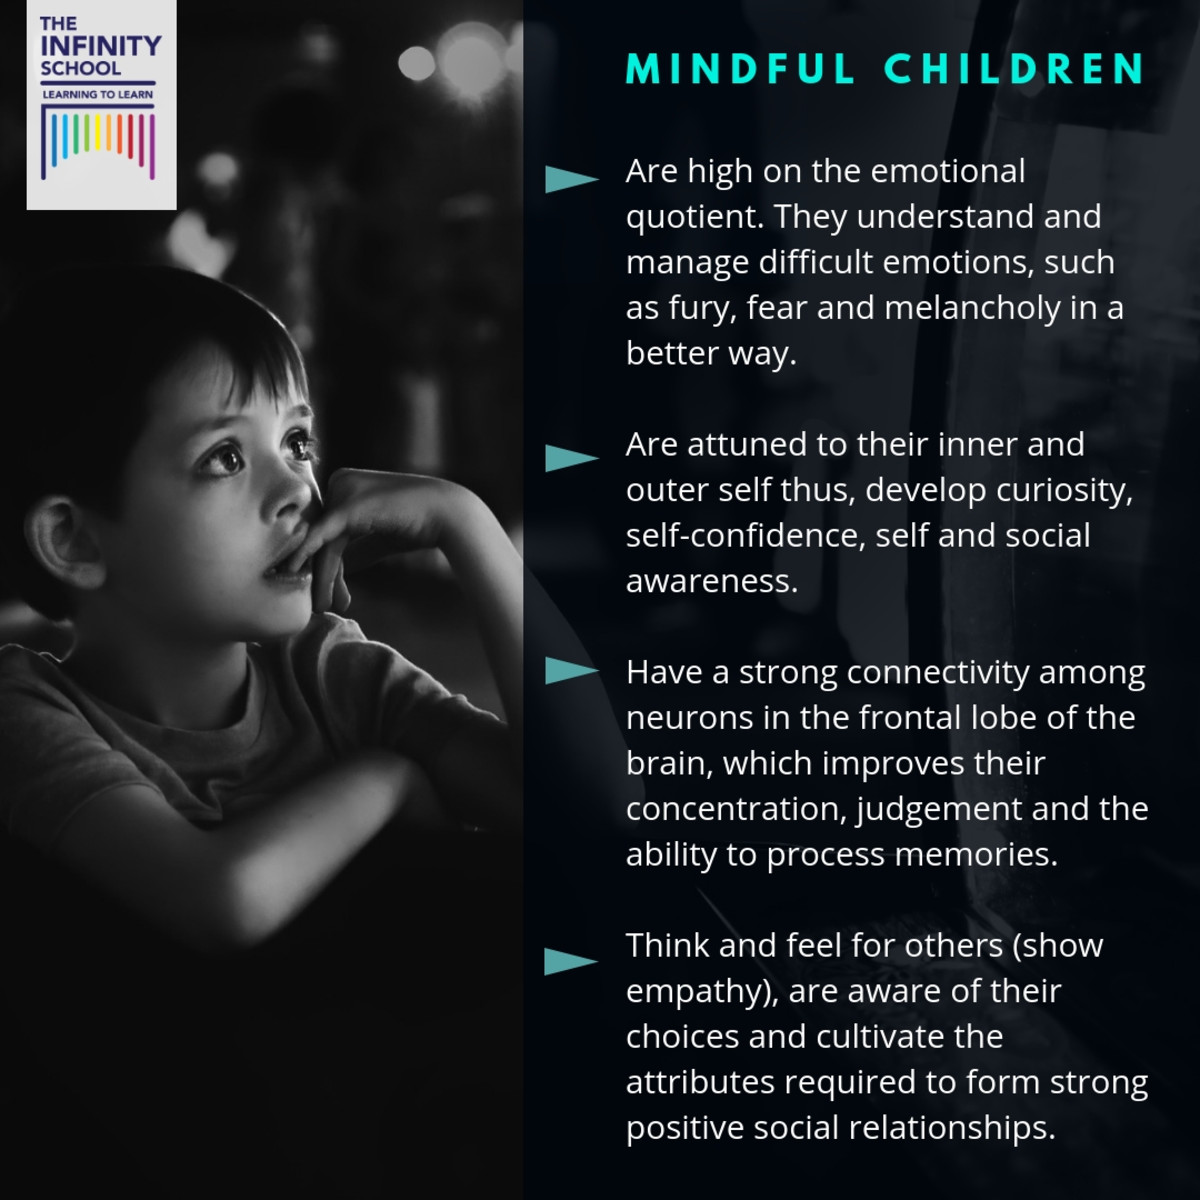 The characteristics of a mindful child